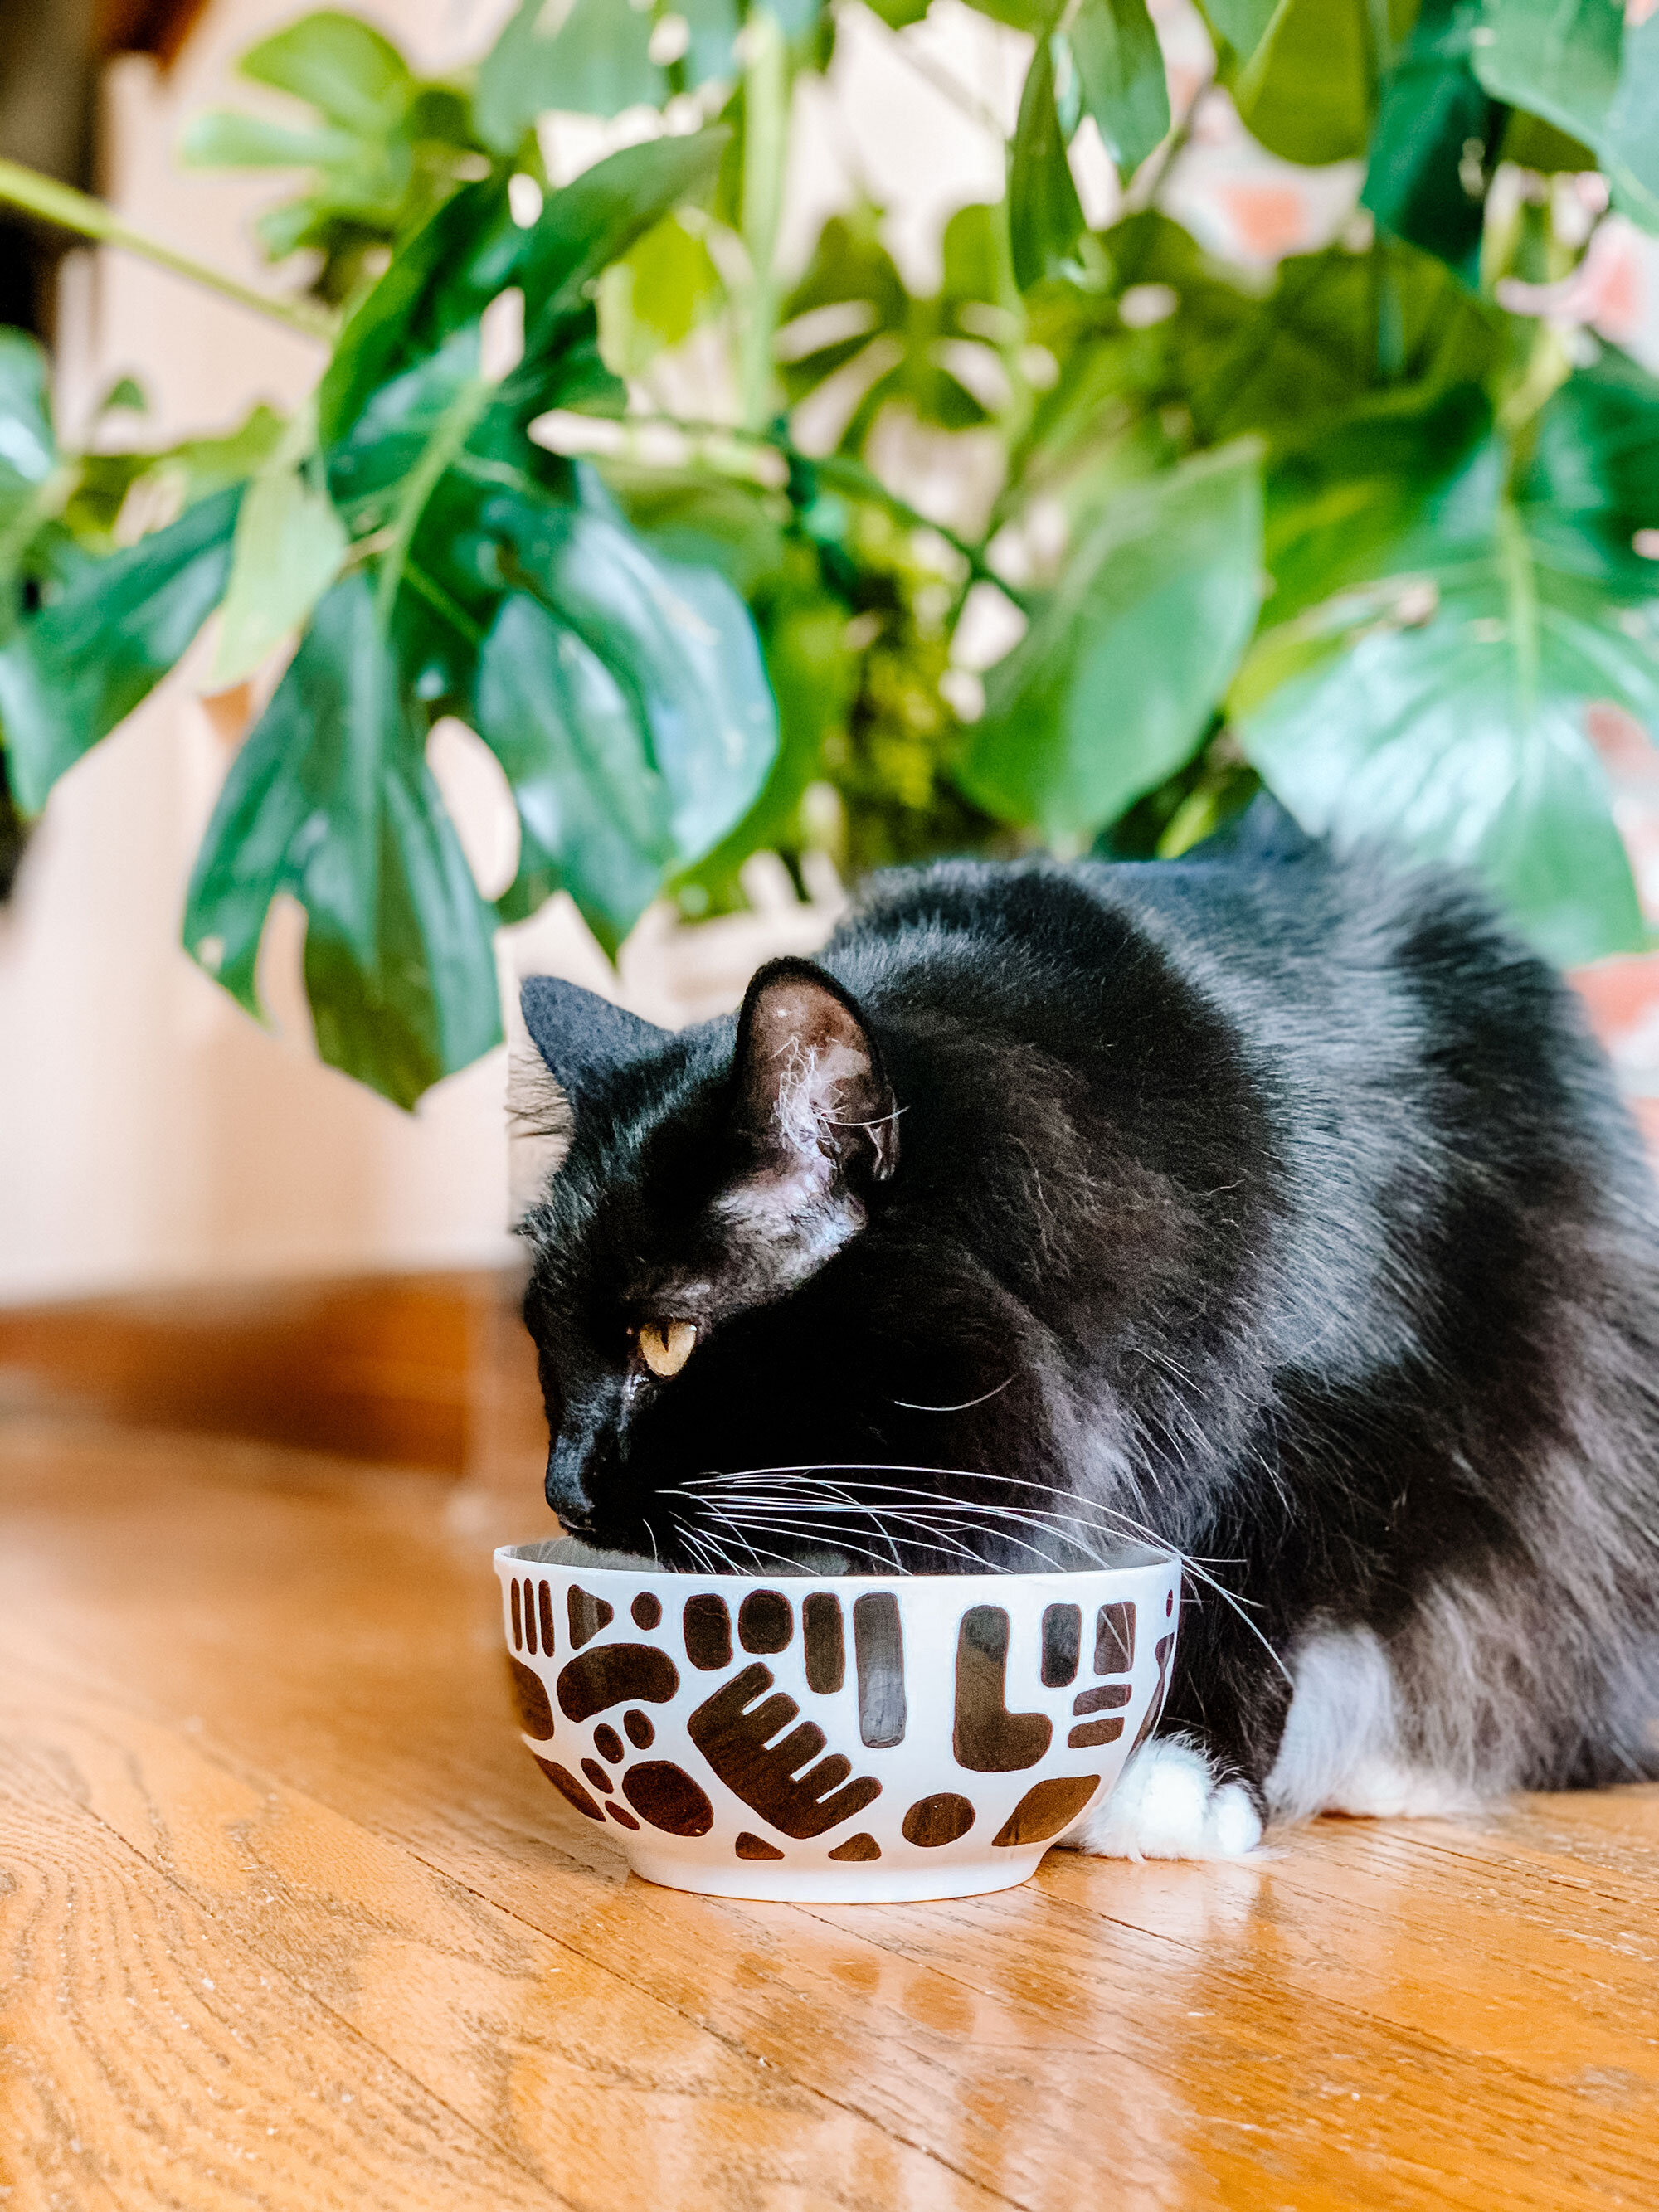 How To Make Painted Pet Bowls The Green Mad House